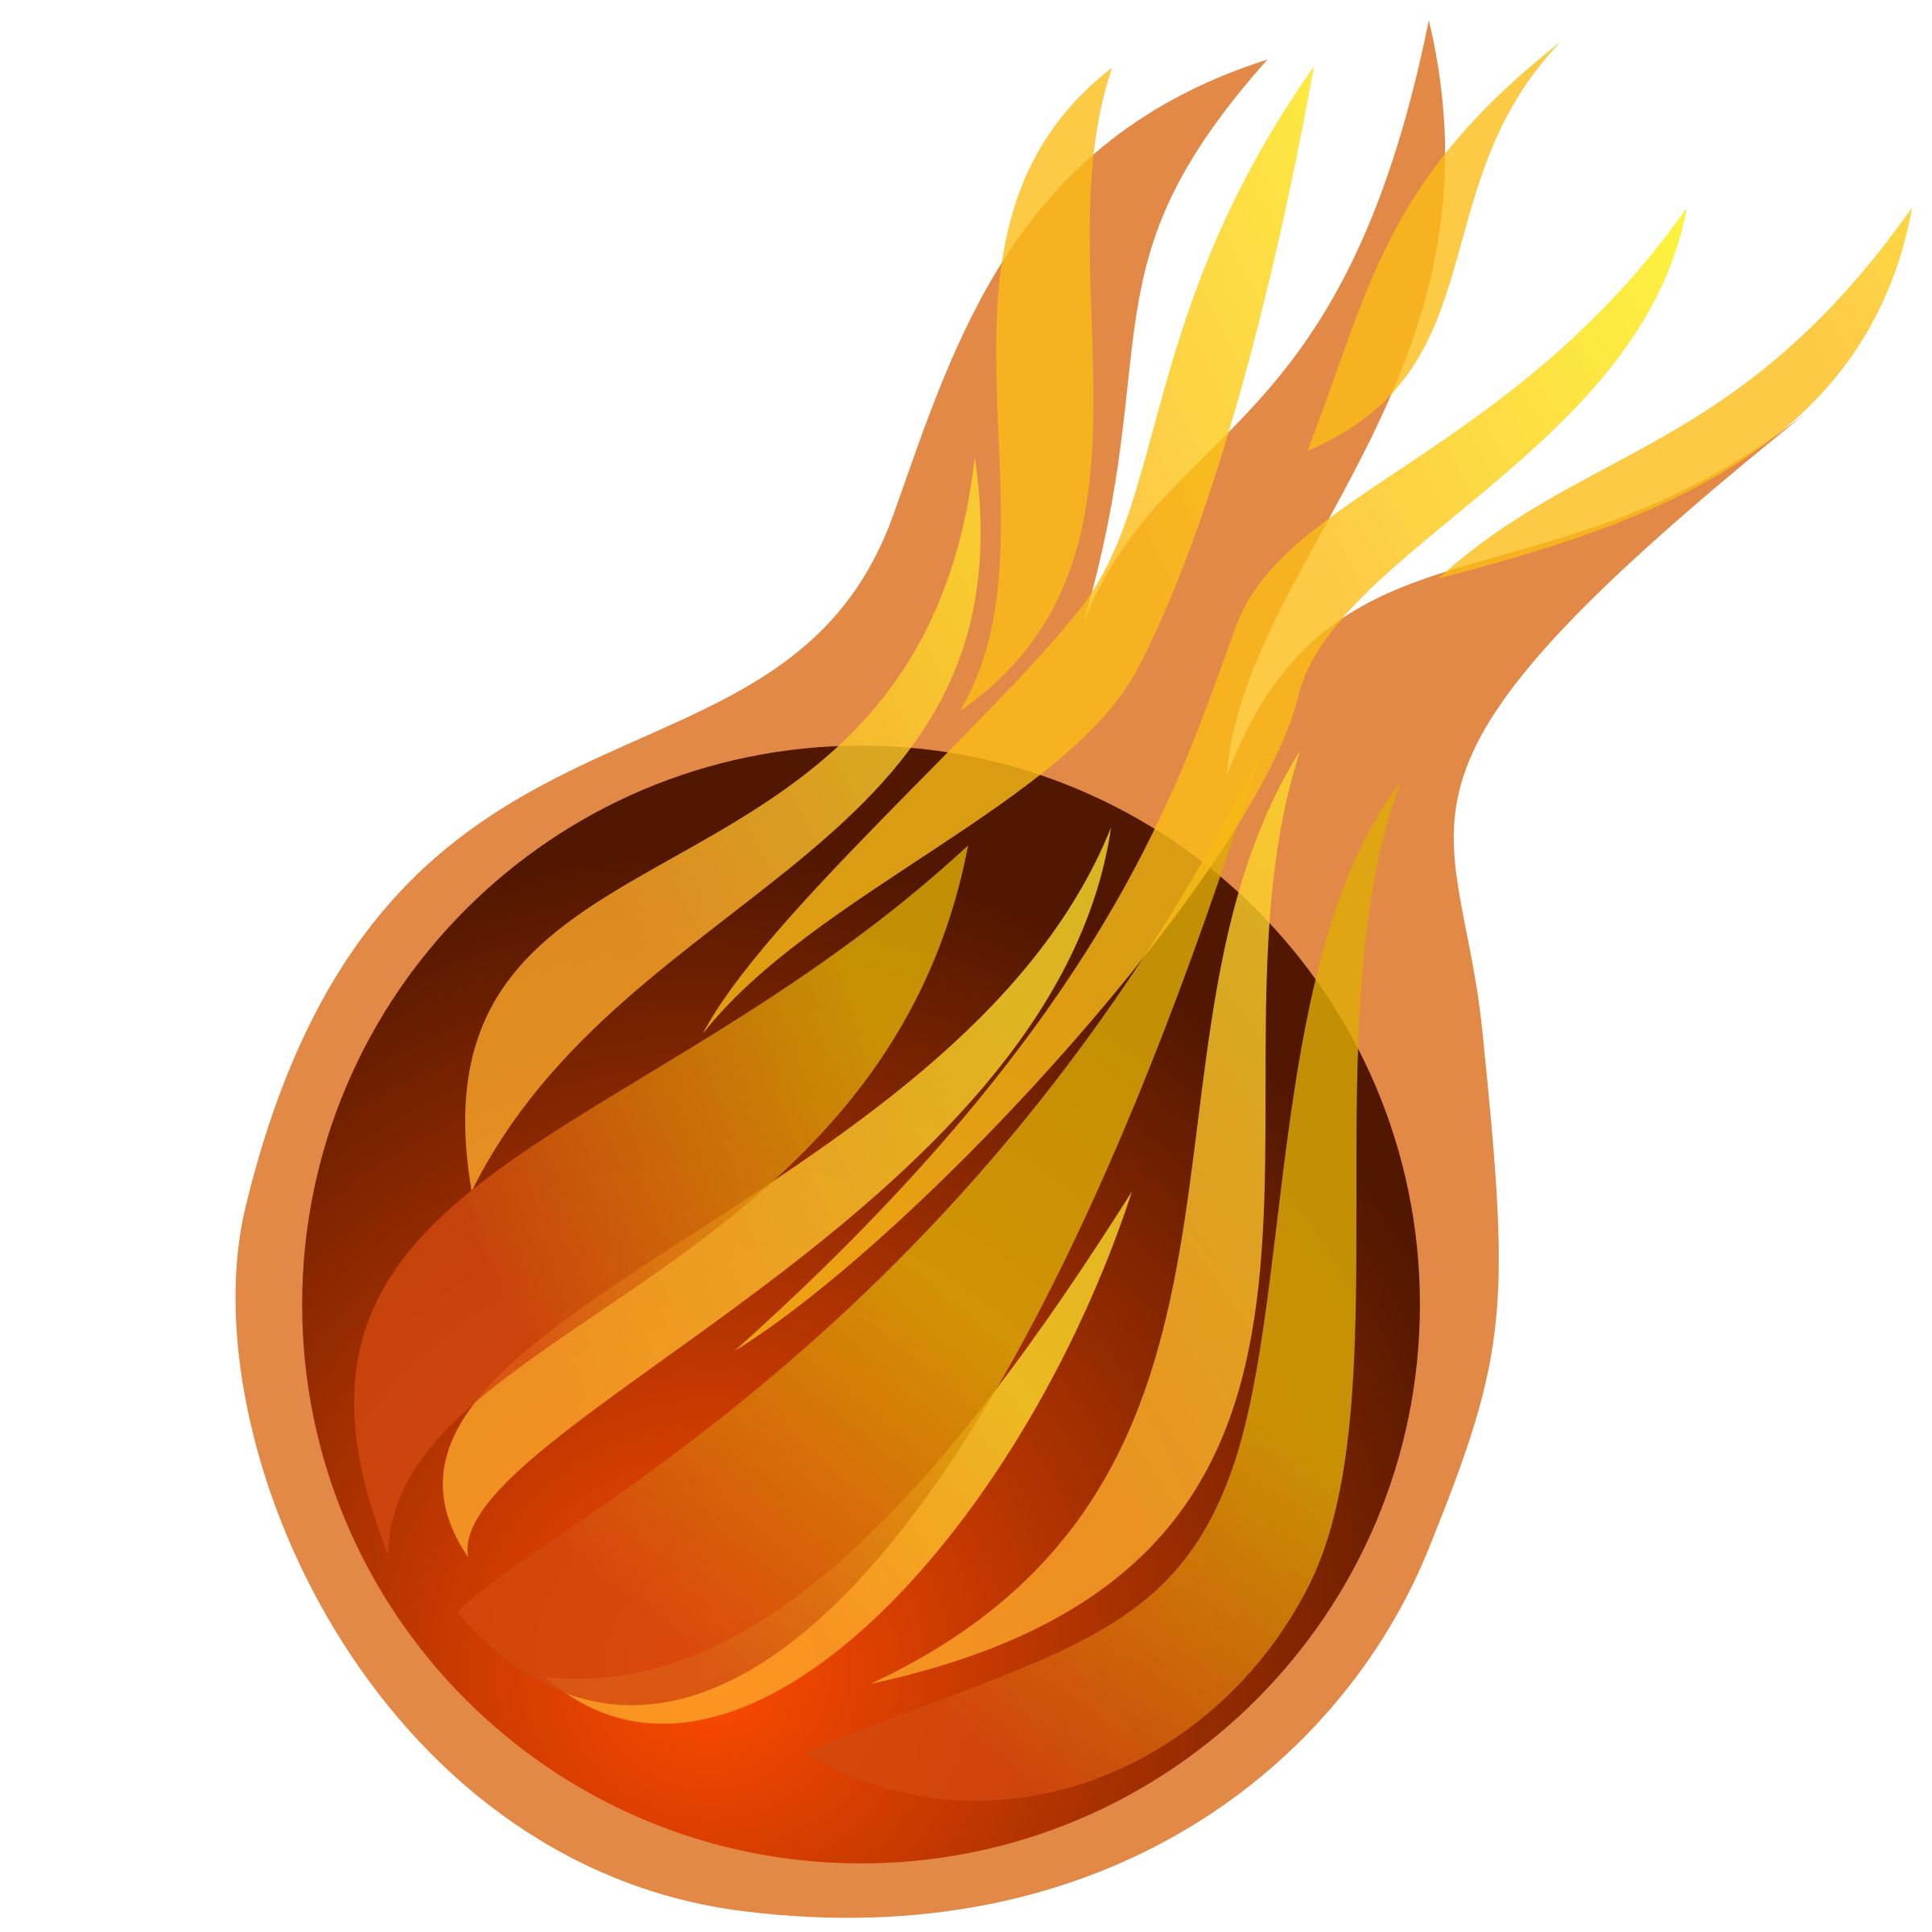 Fireball clipart real. Big image png